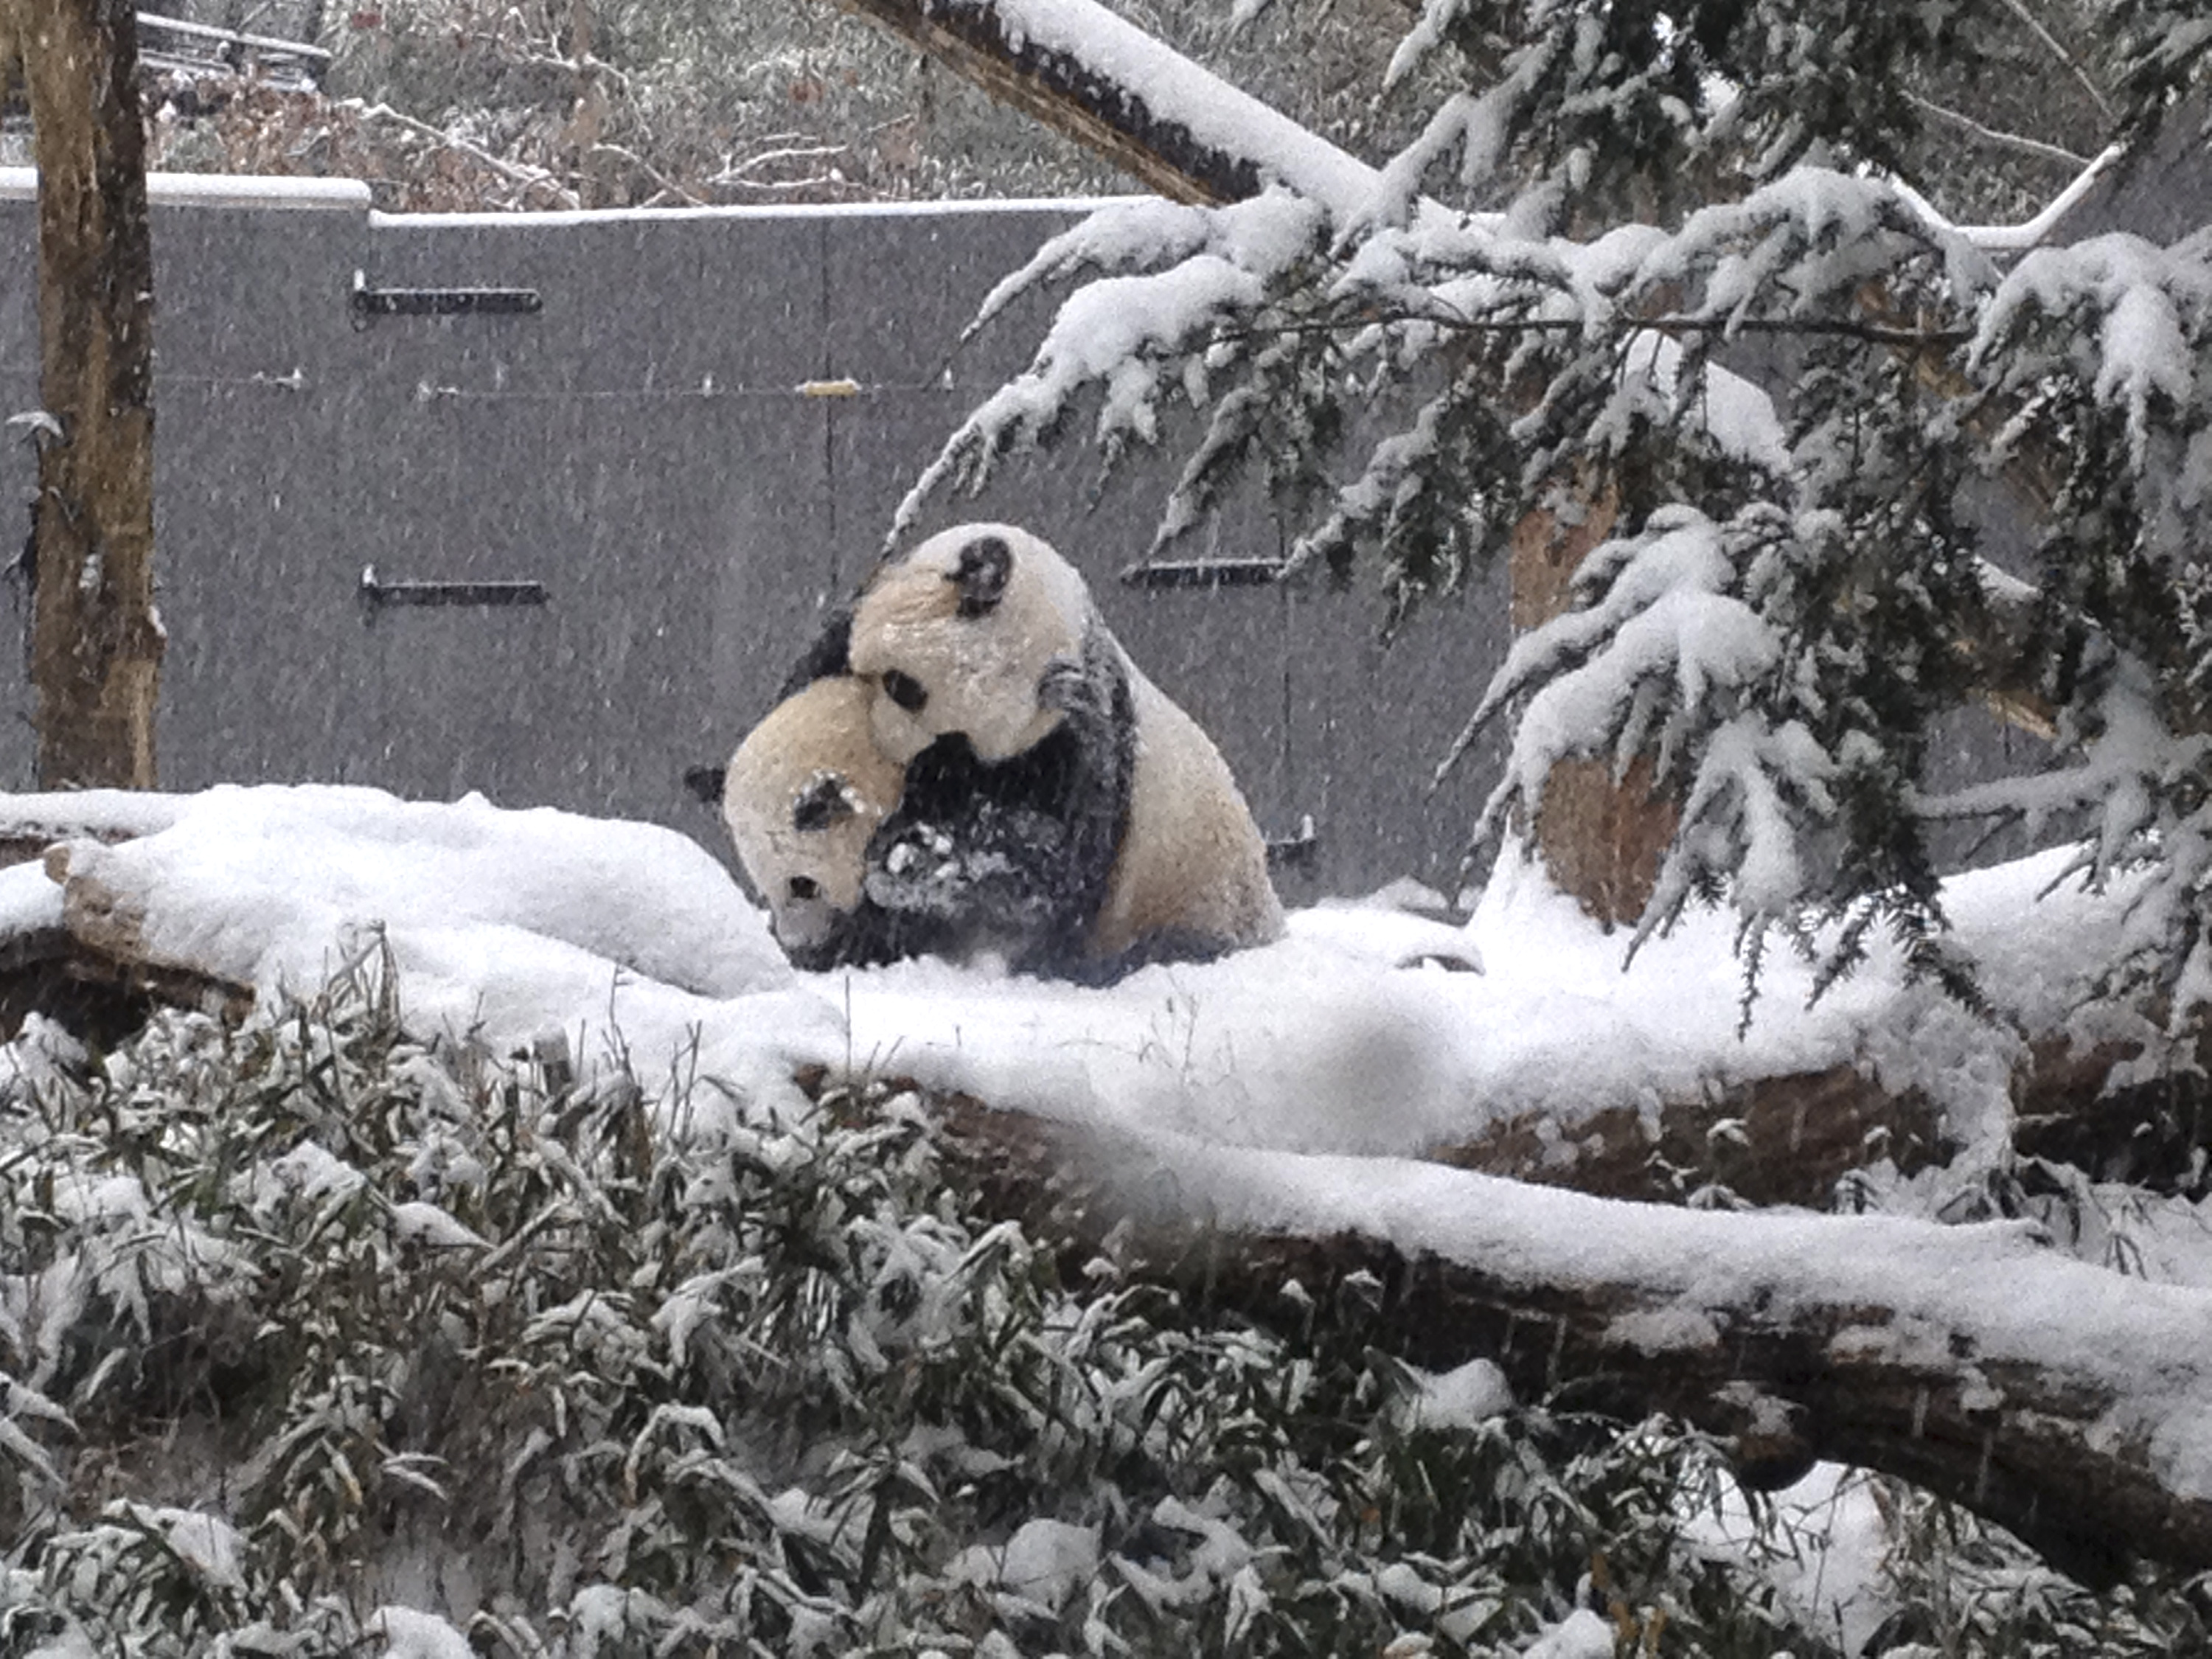 Sixteen-month-old Giant panda cub Bao Bao plays in the snow with her mother Mei Xiang at the Smithsonian's National Zoo in Washington